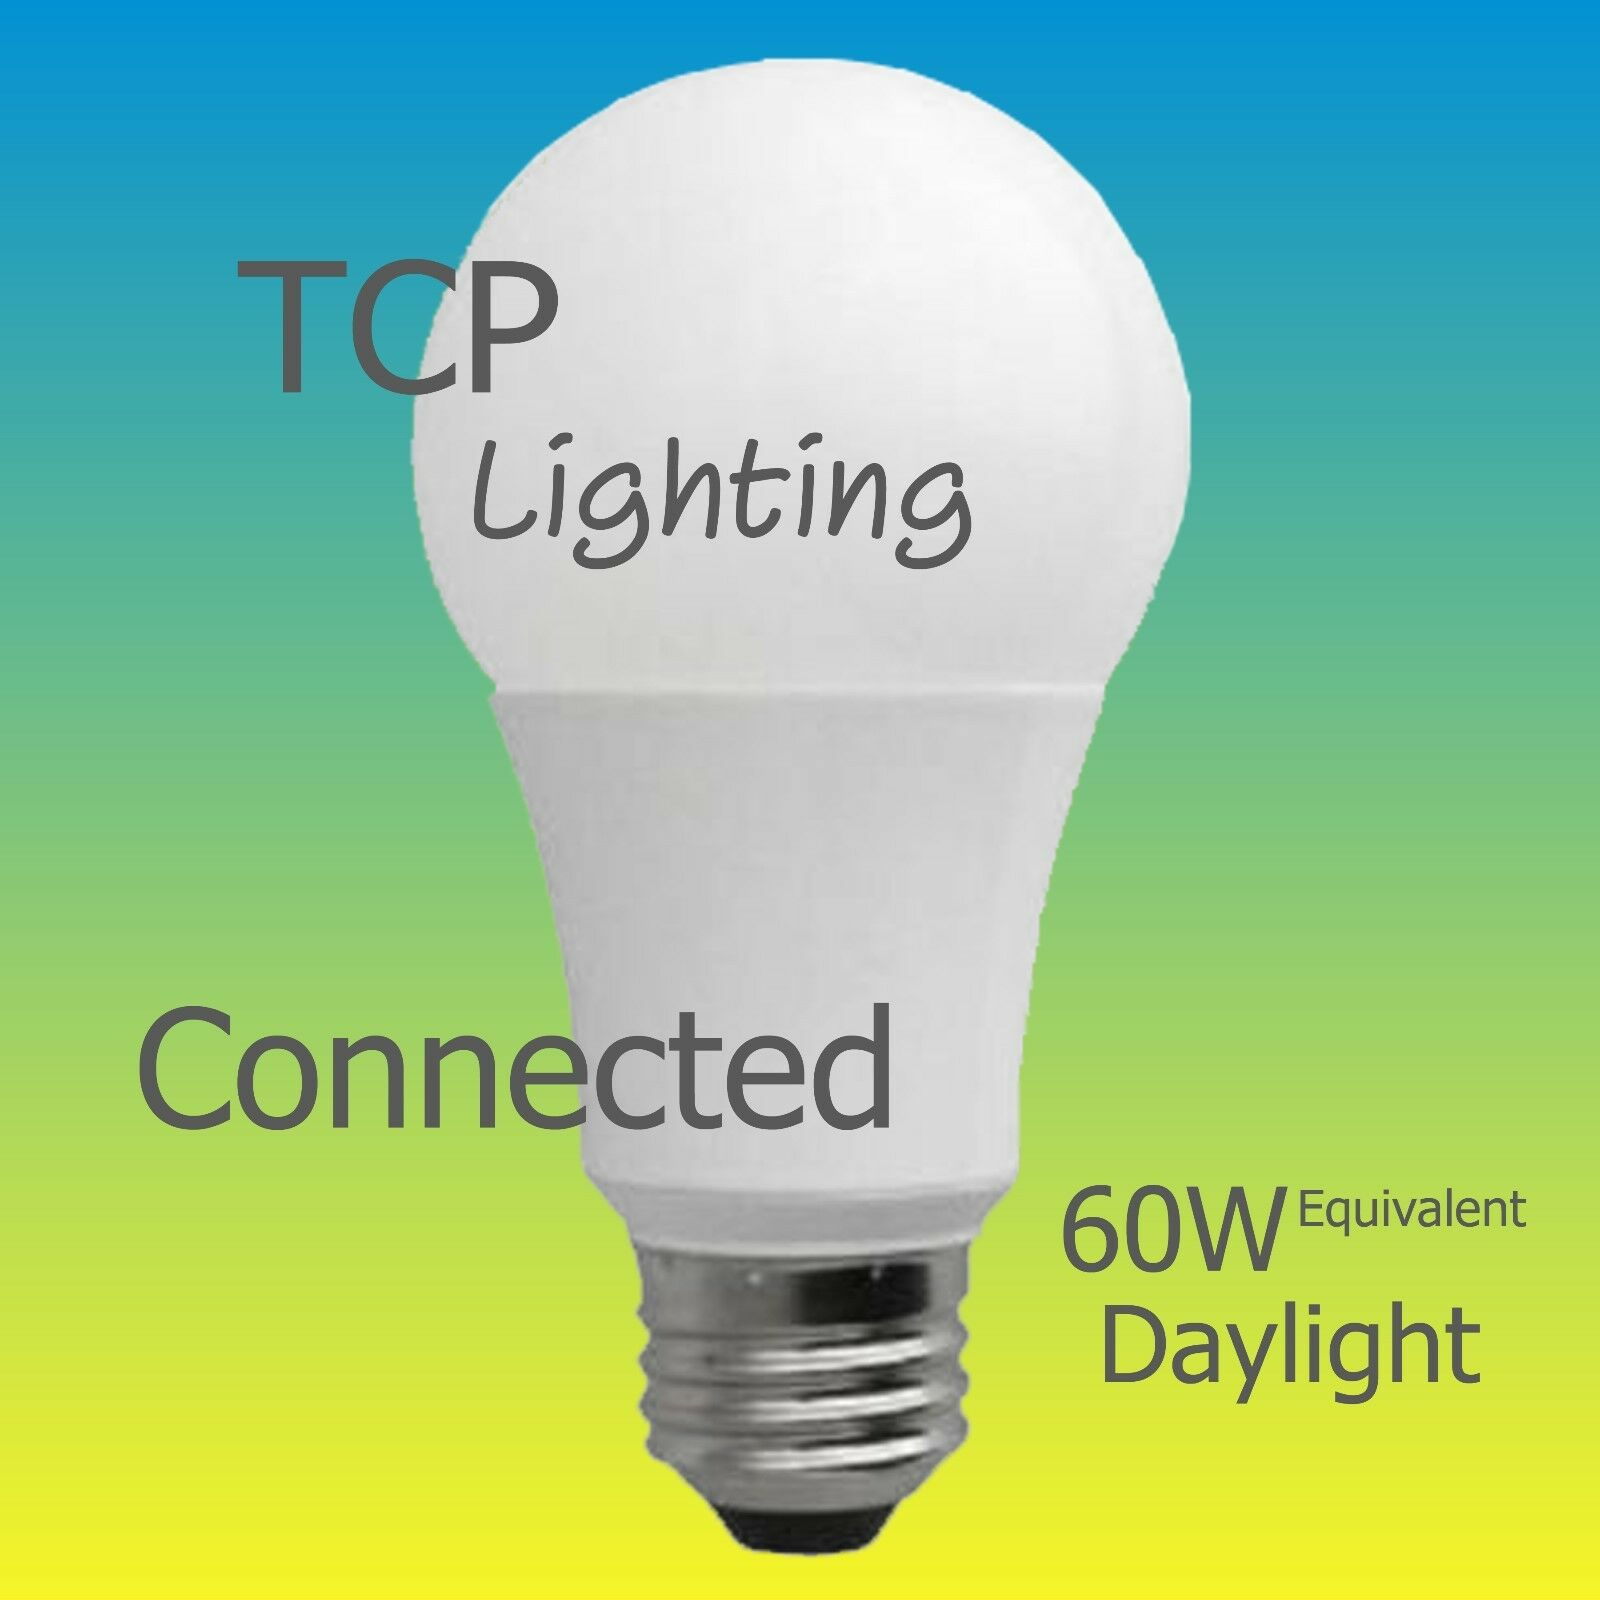 TCP LED Connected A19 - 60W Equivalent,  Daylight  WiFi Enab